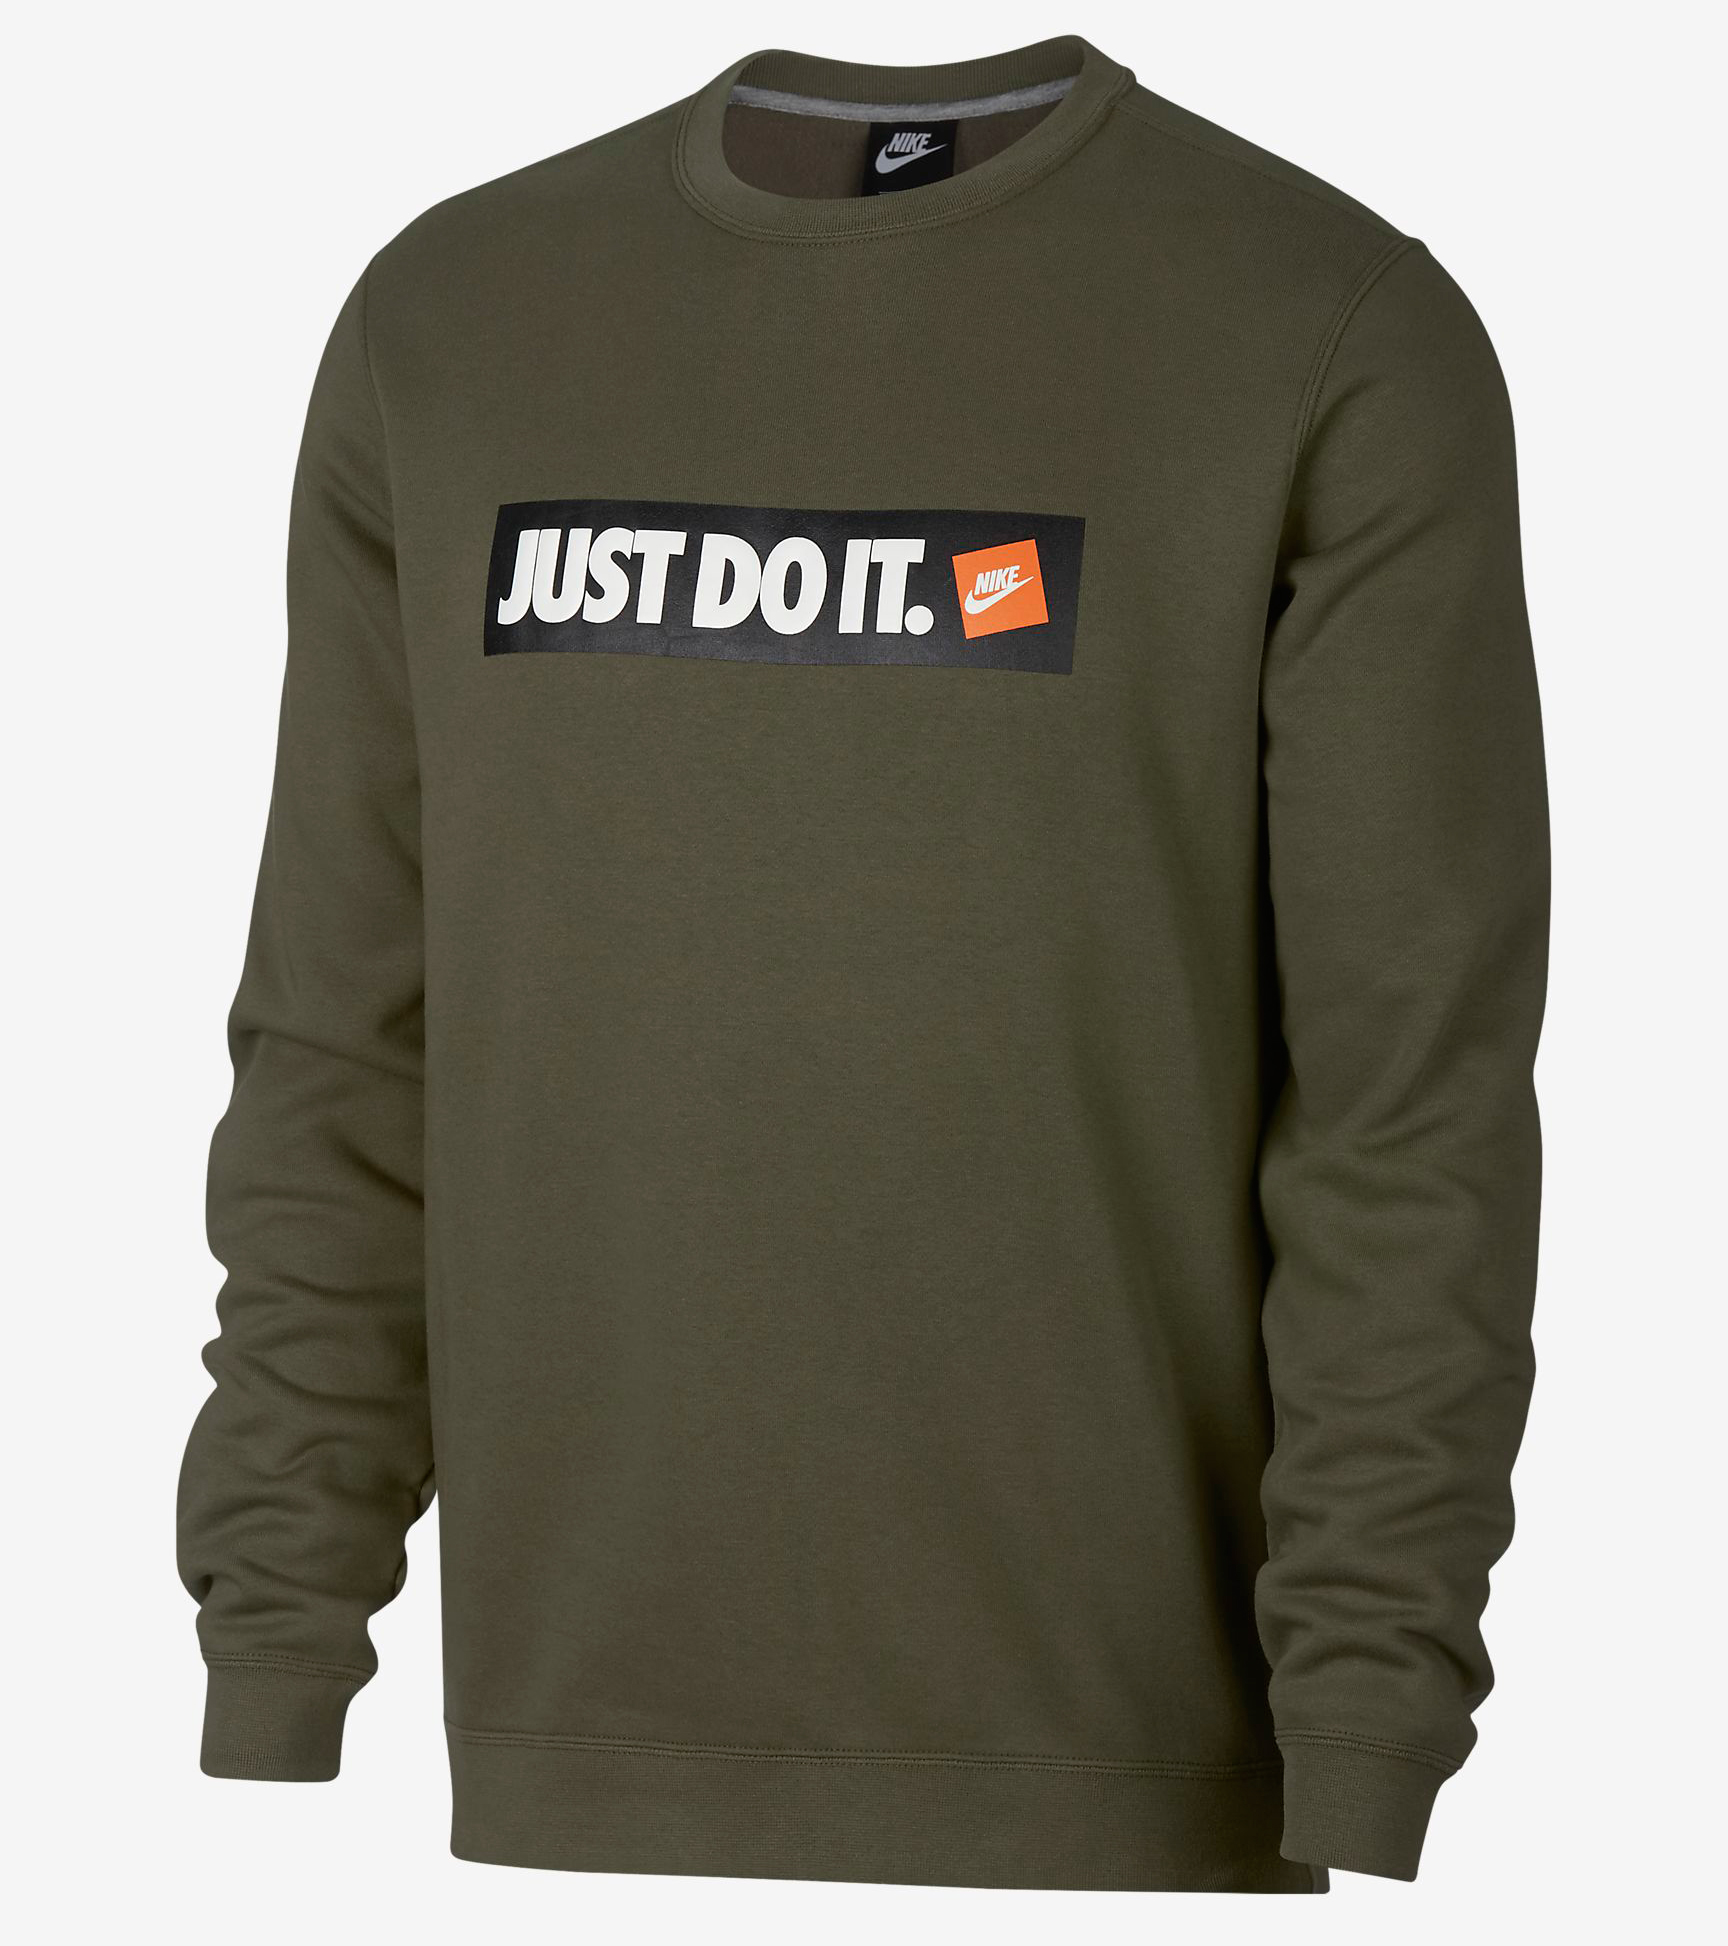 nike-air-max-95-olive-orange-crew-sweatshirt-match